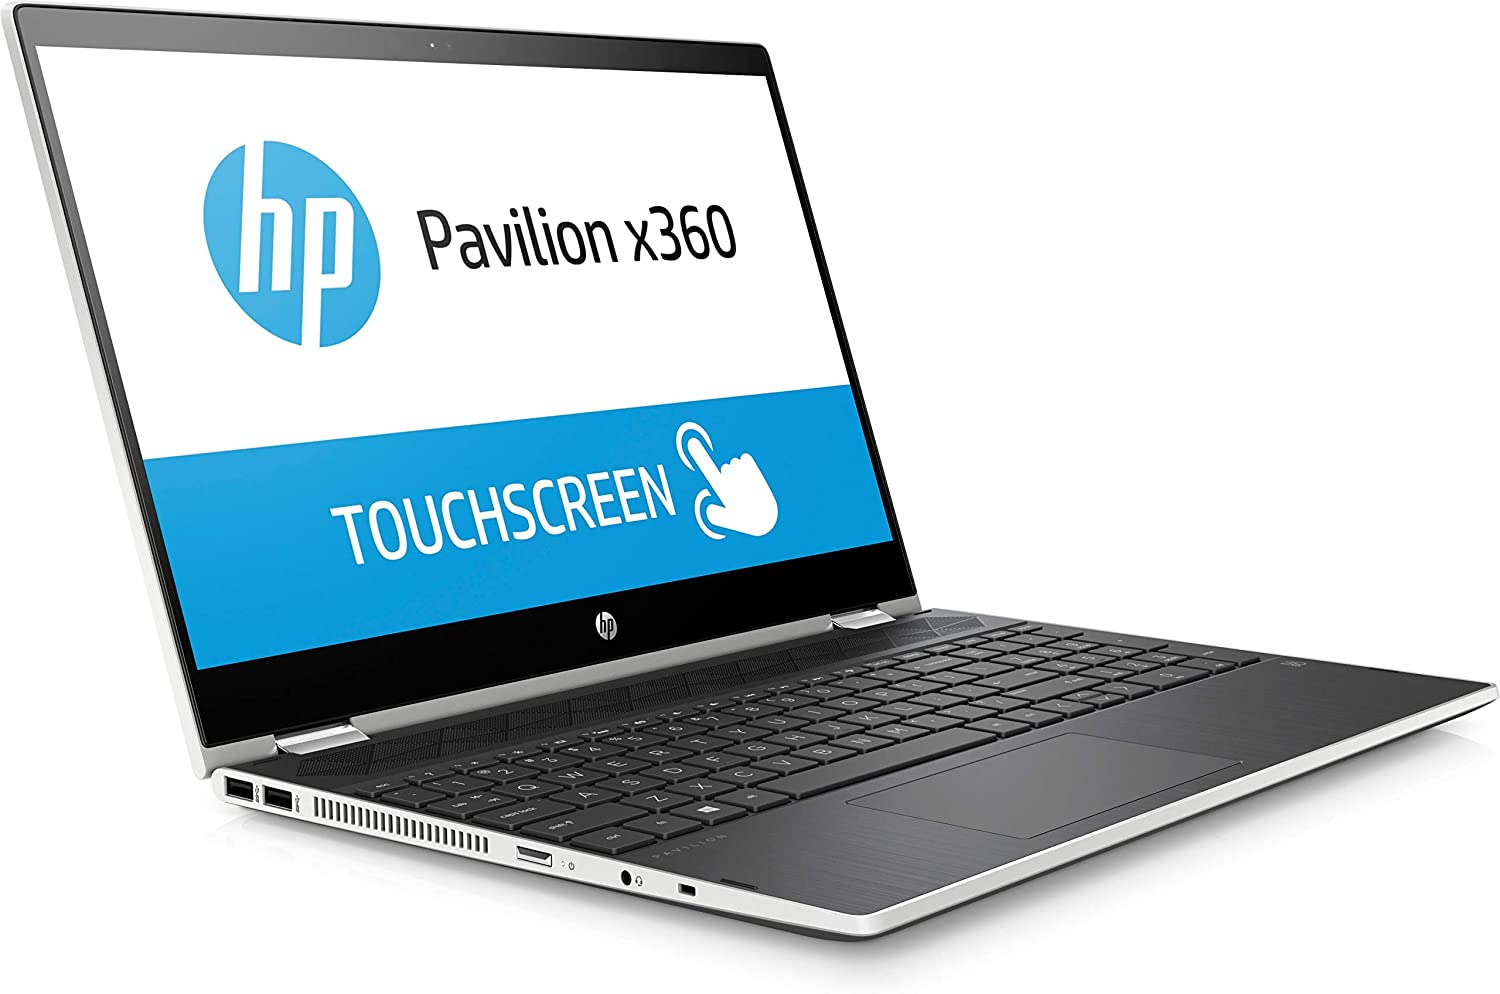 Amazon.com: HP Pavilion x360 15.6